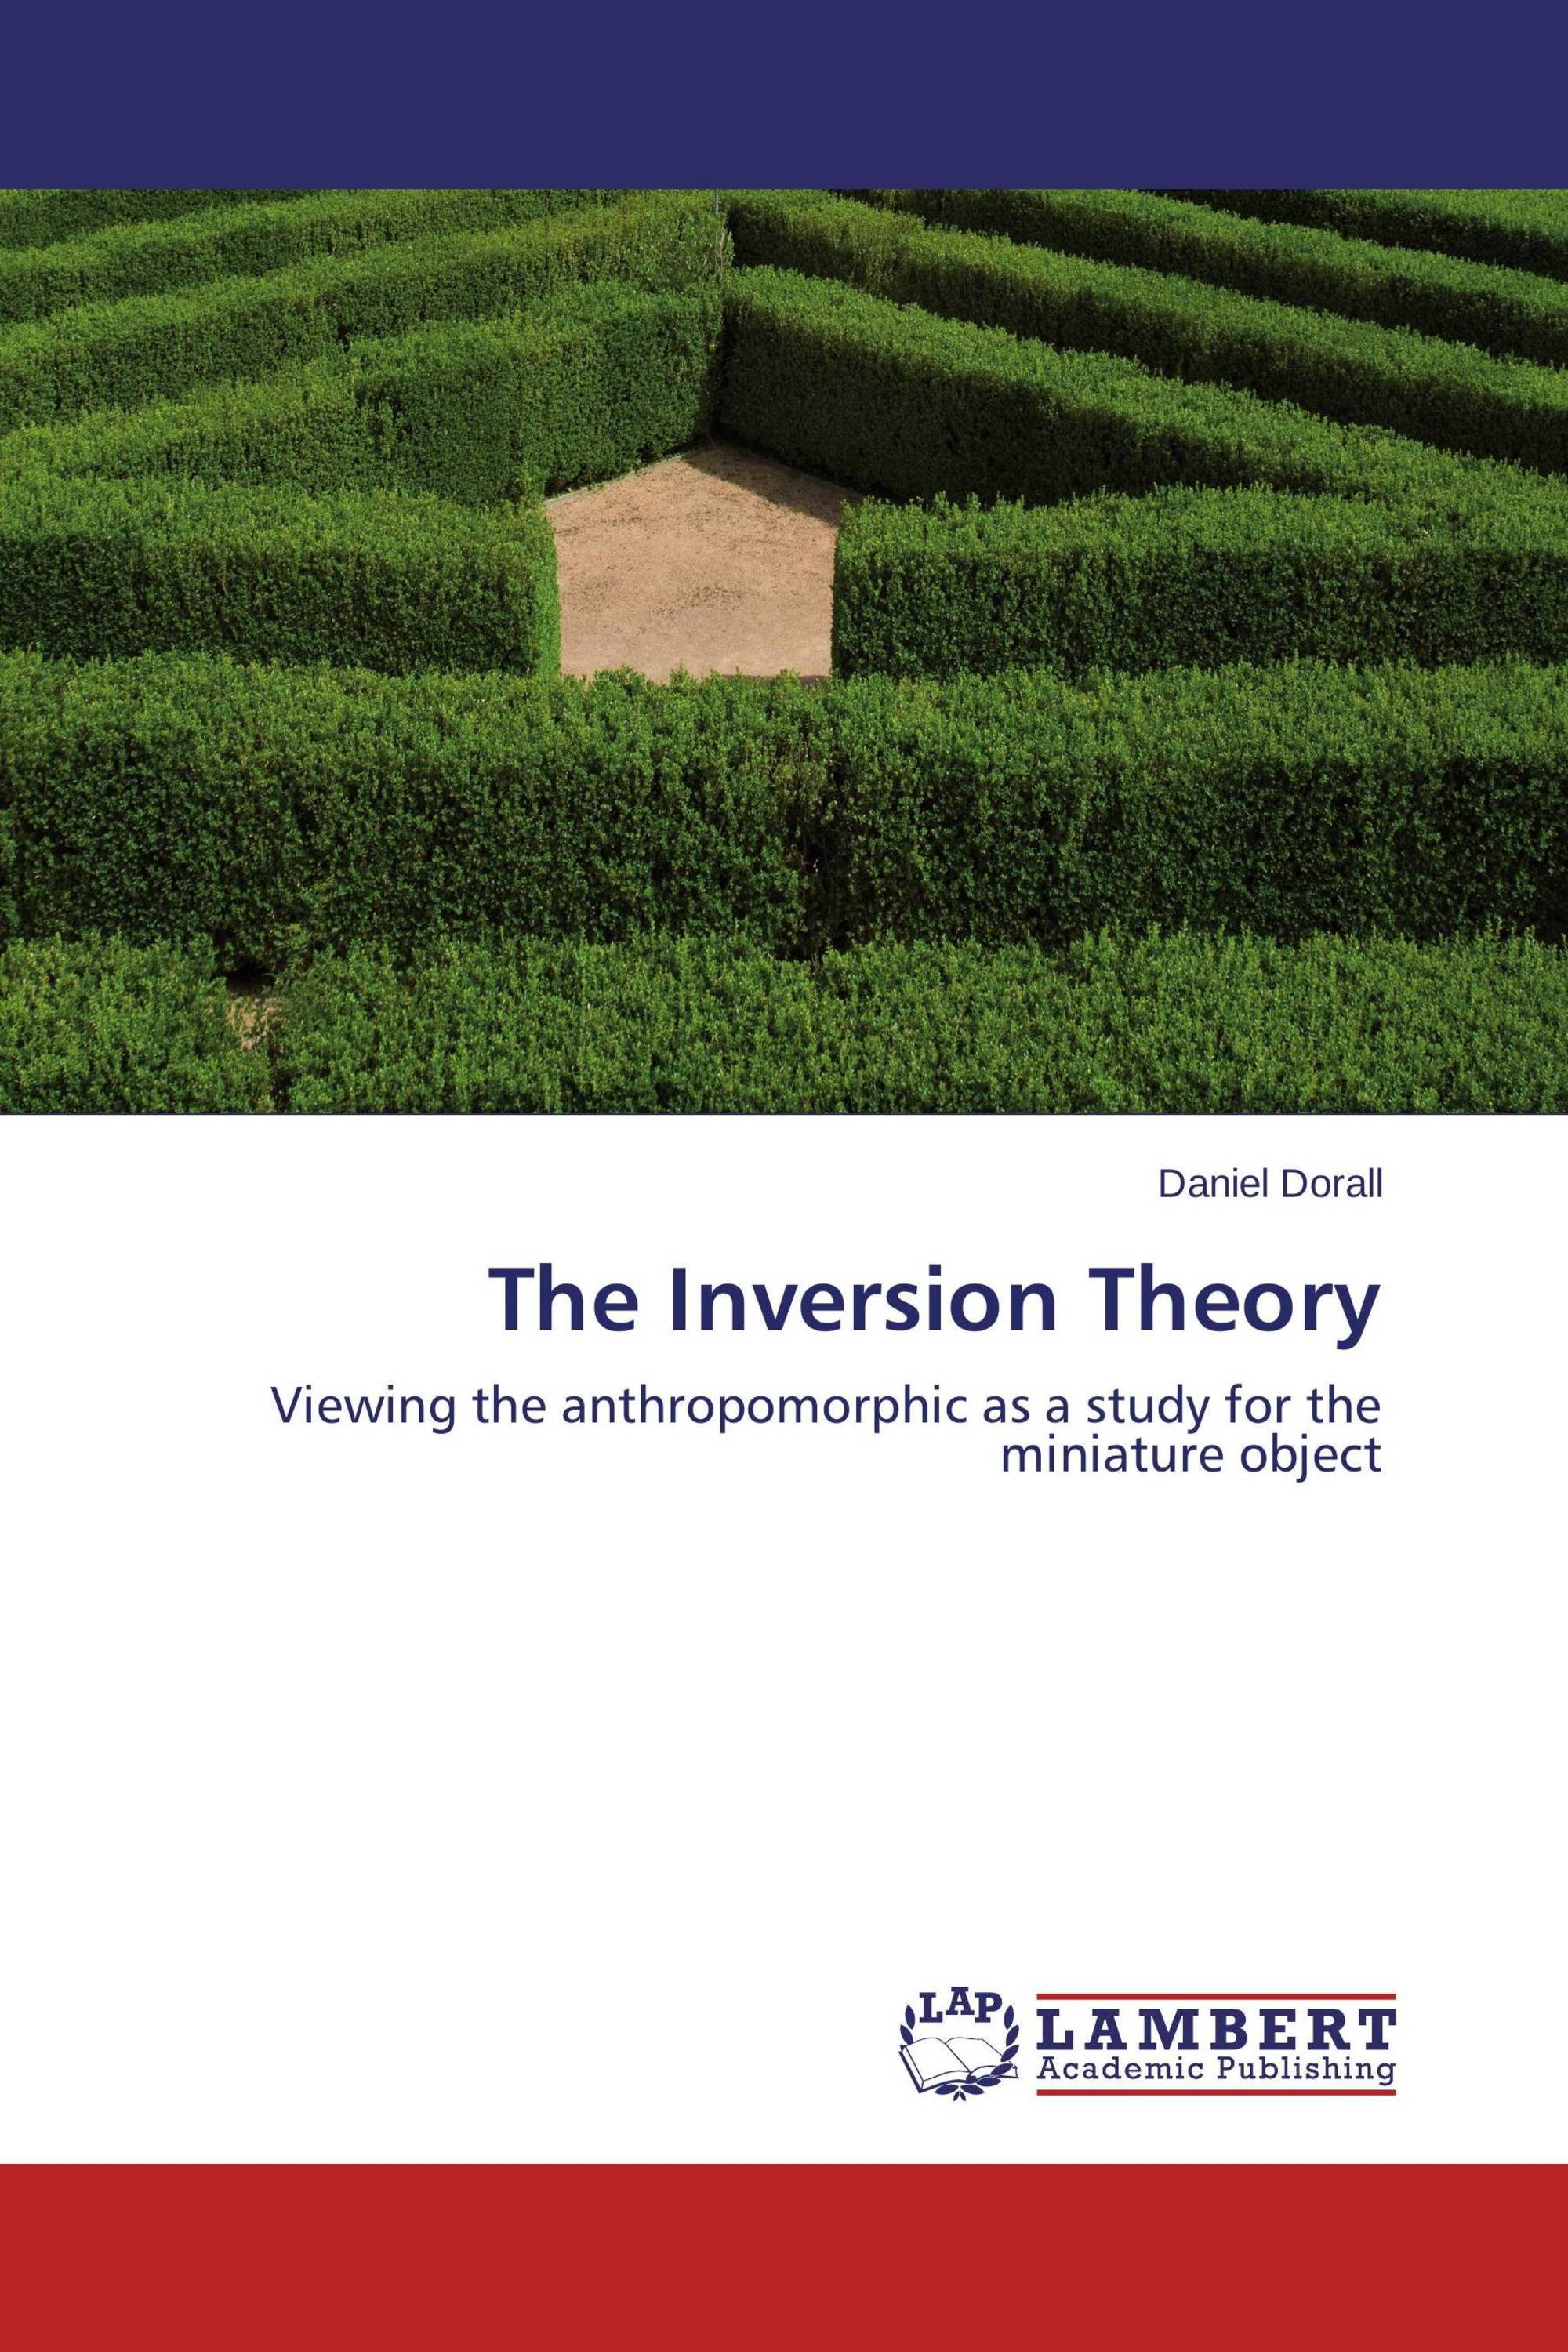 The Inversion Theory